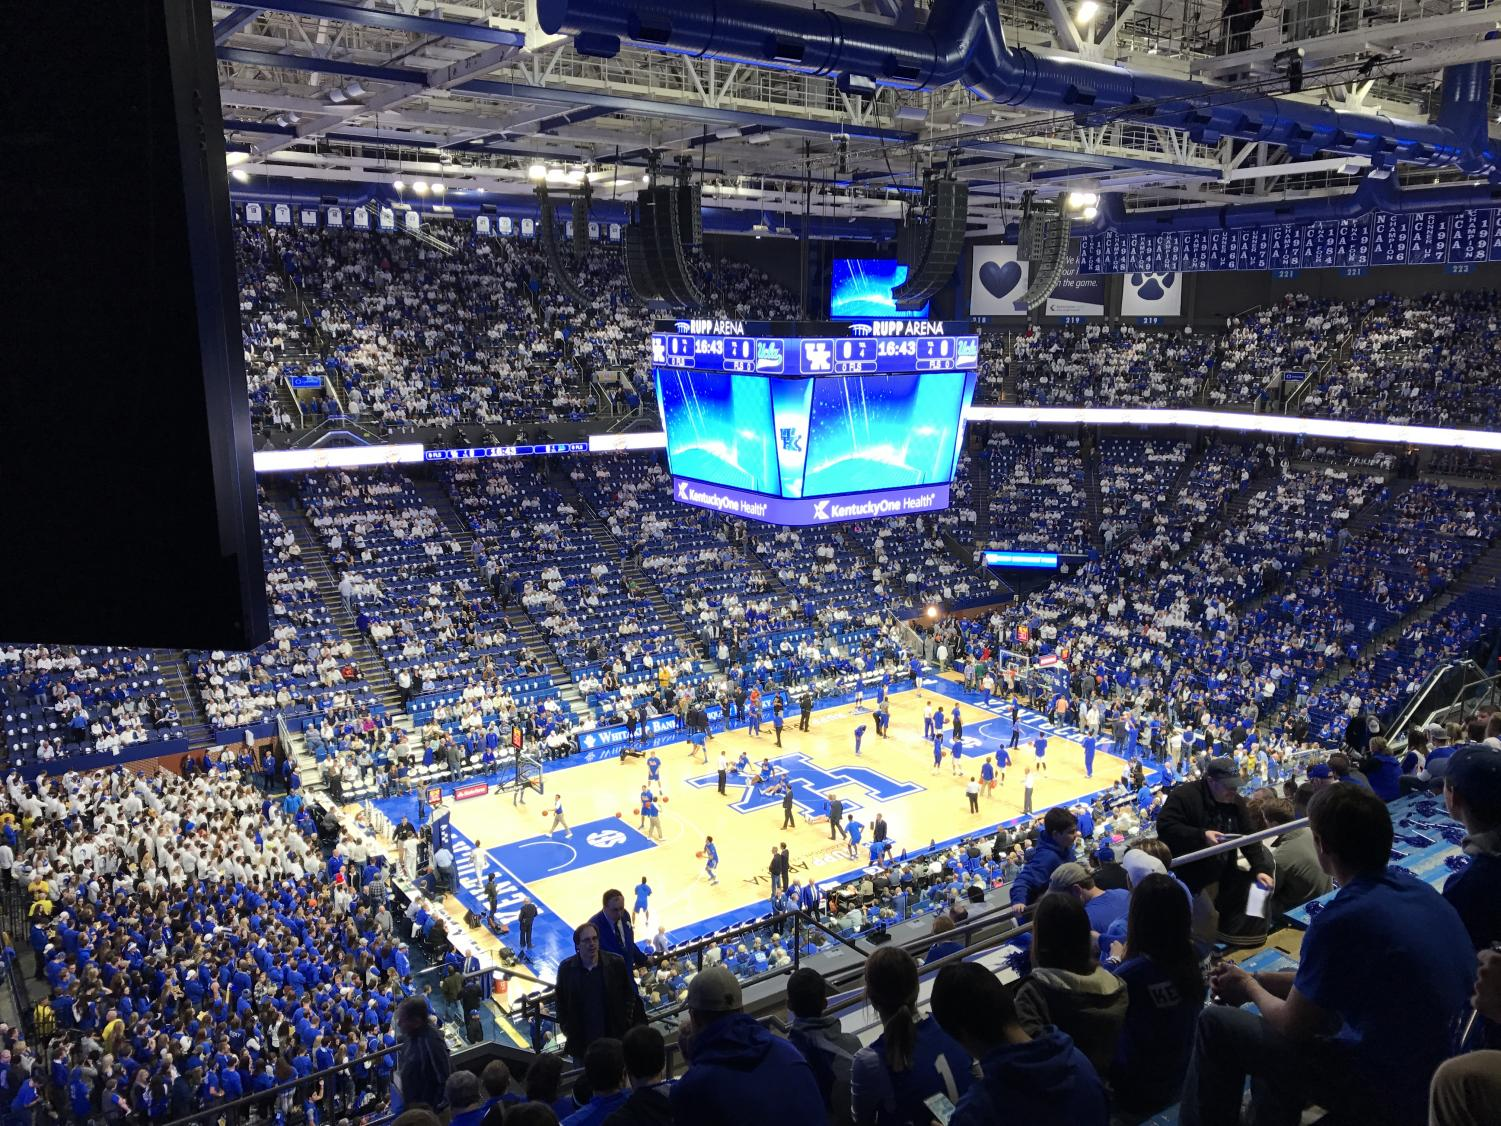 The two teams faced off at Rupp Arena on Nov. 29.